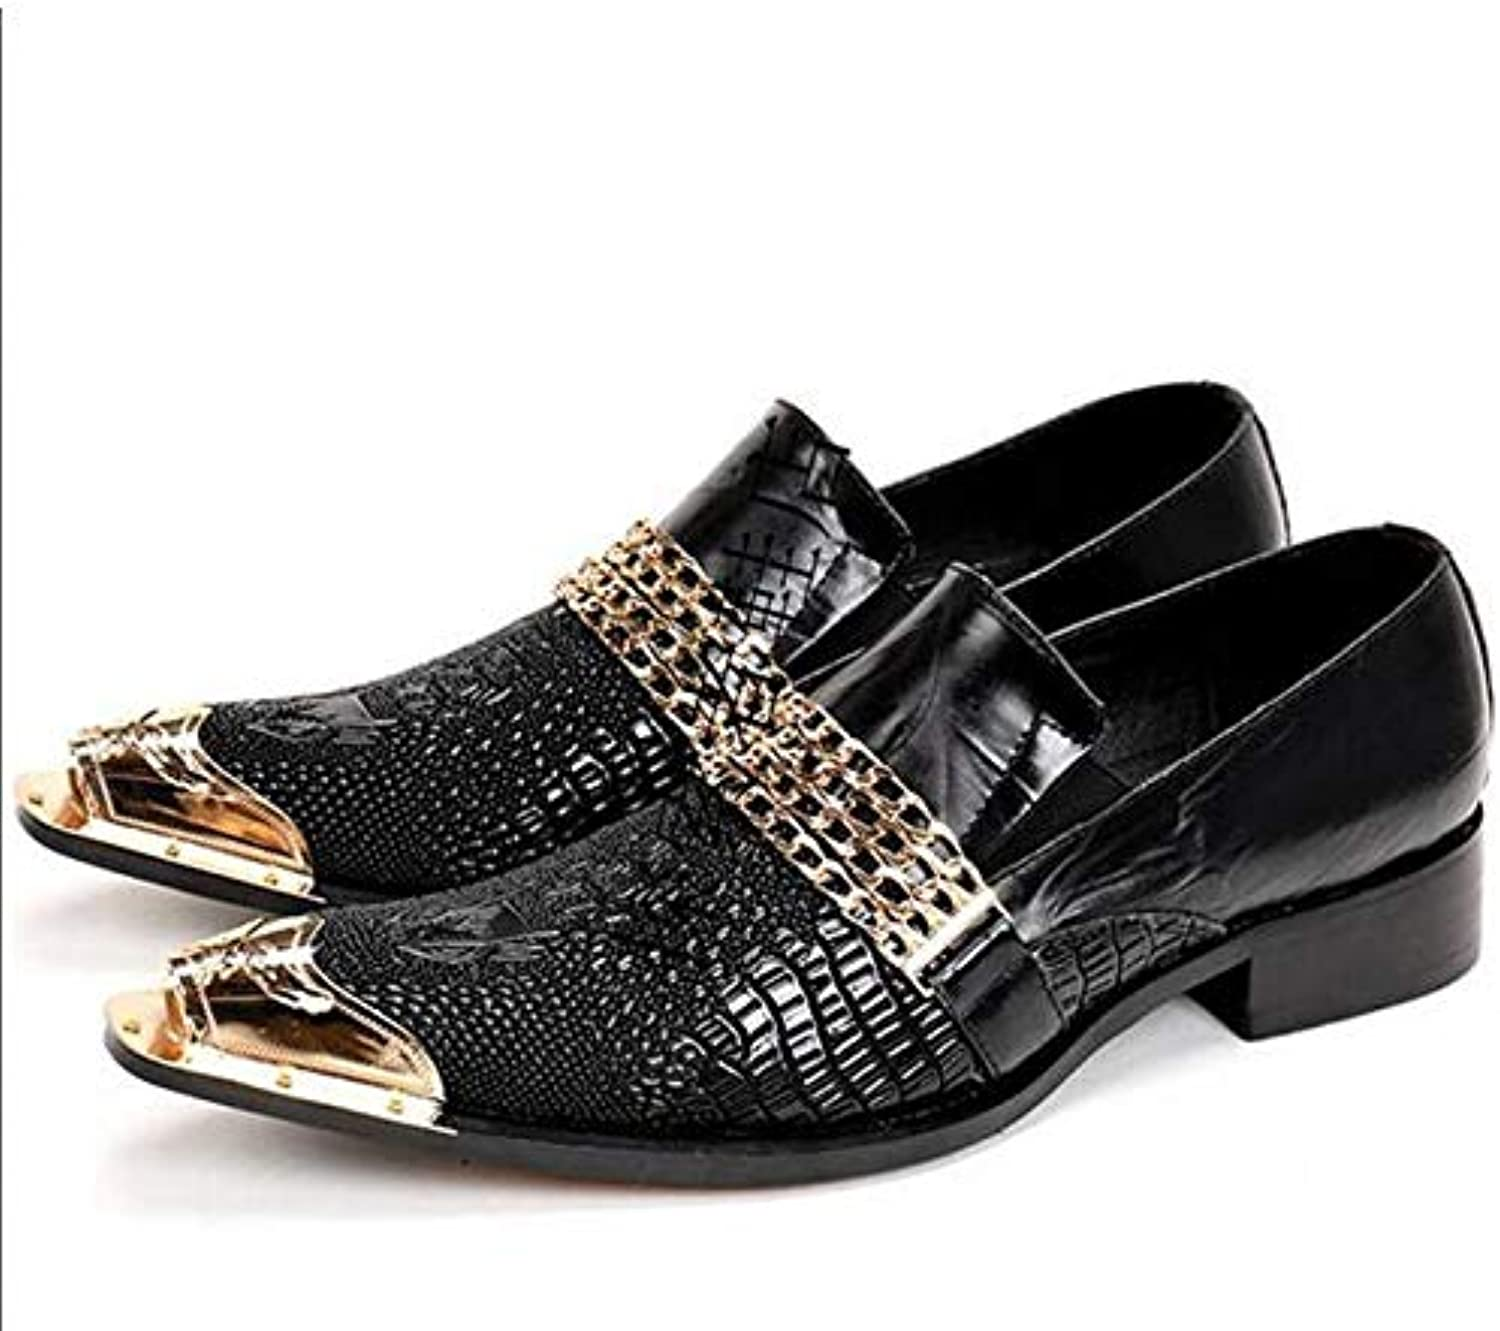 LOVDRAM MAN'S Leather skor Mode Mode Mode Italienska män Dress skor Retro Genuine Leather Crocodile Grain Män skor Party Wedding Slip On Men Flat Loafer  bästa mode